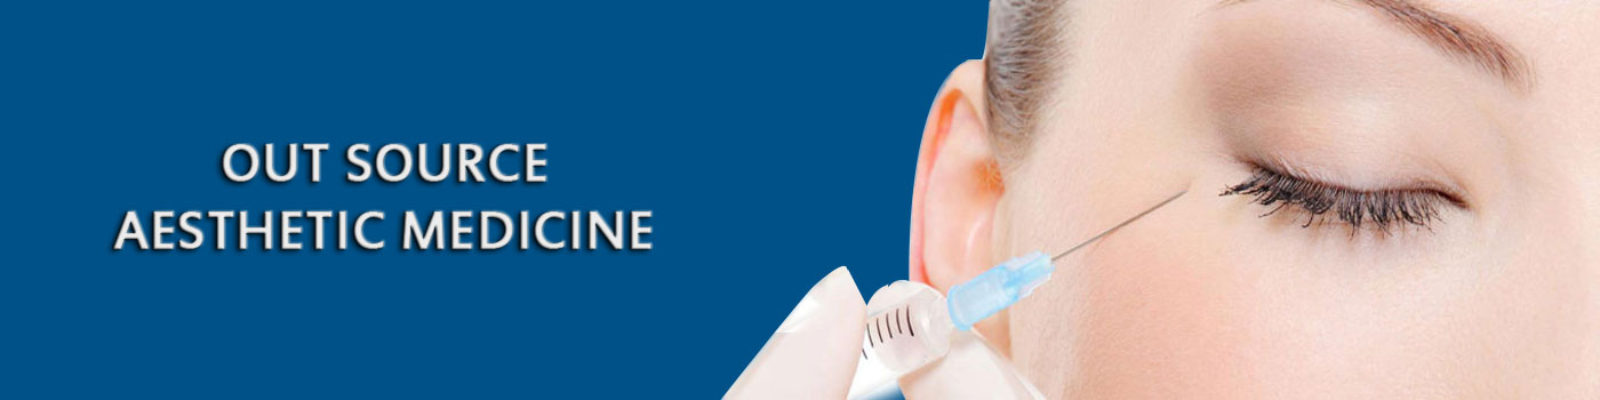 out-source-aesthetic-medicine-procedures